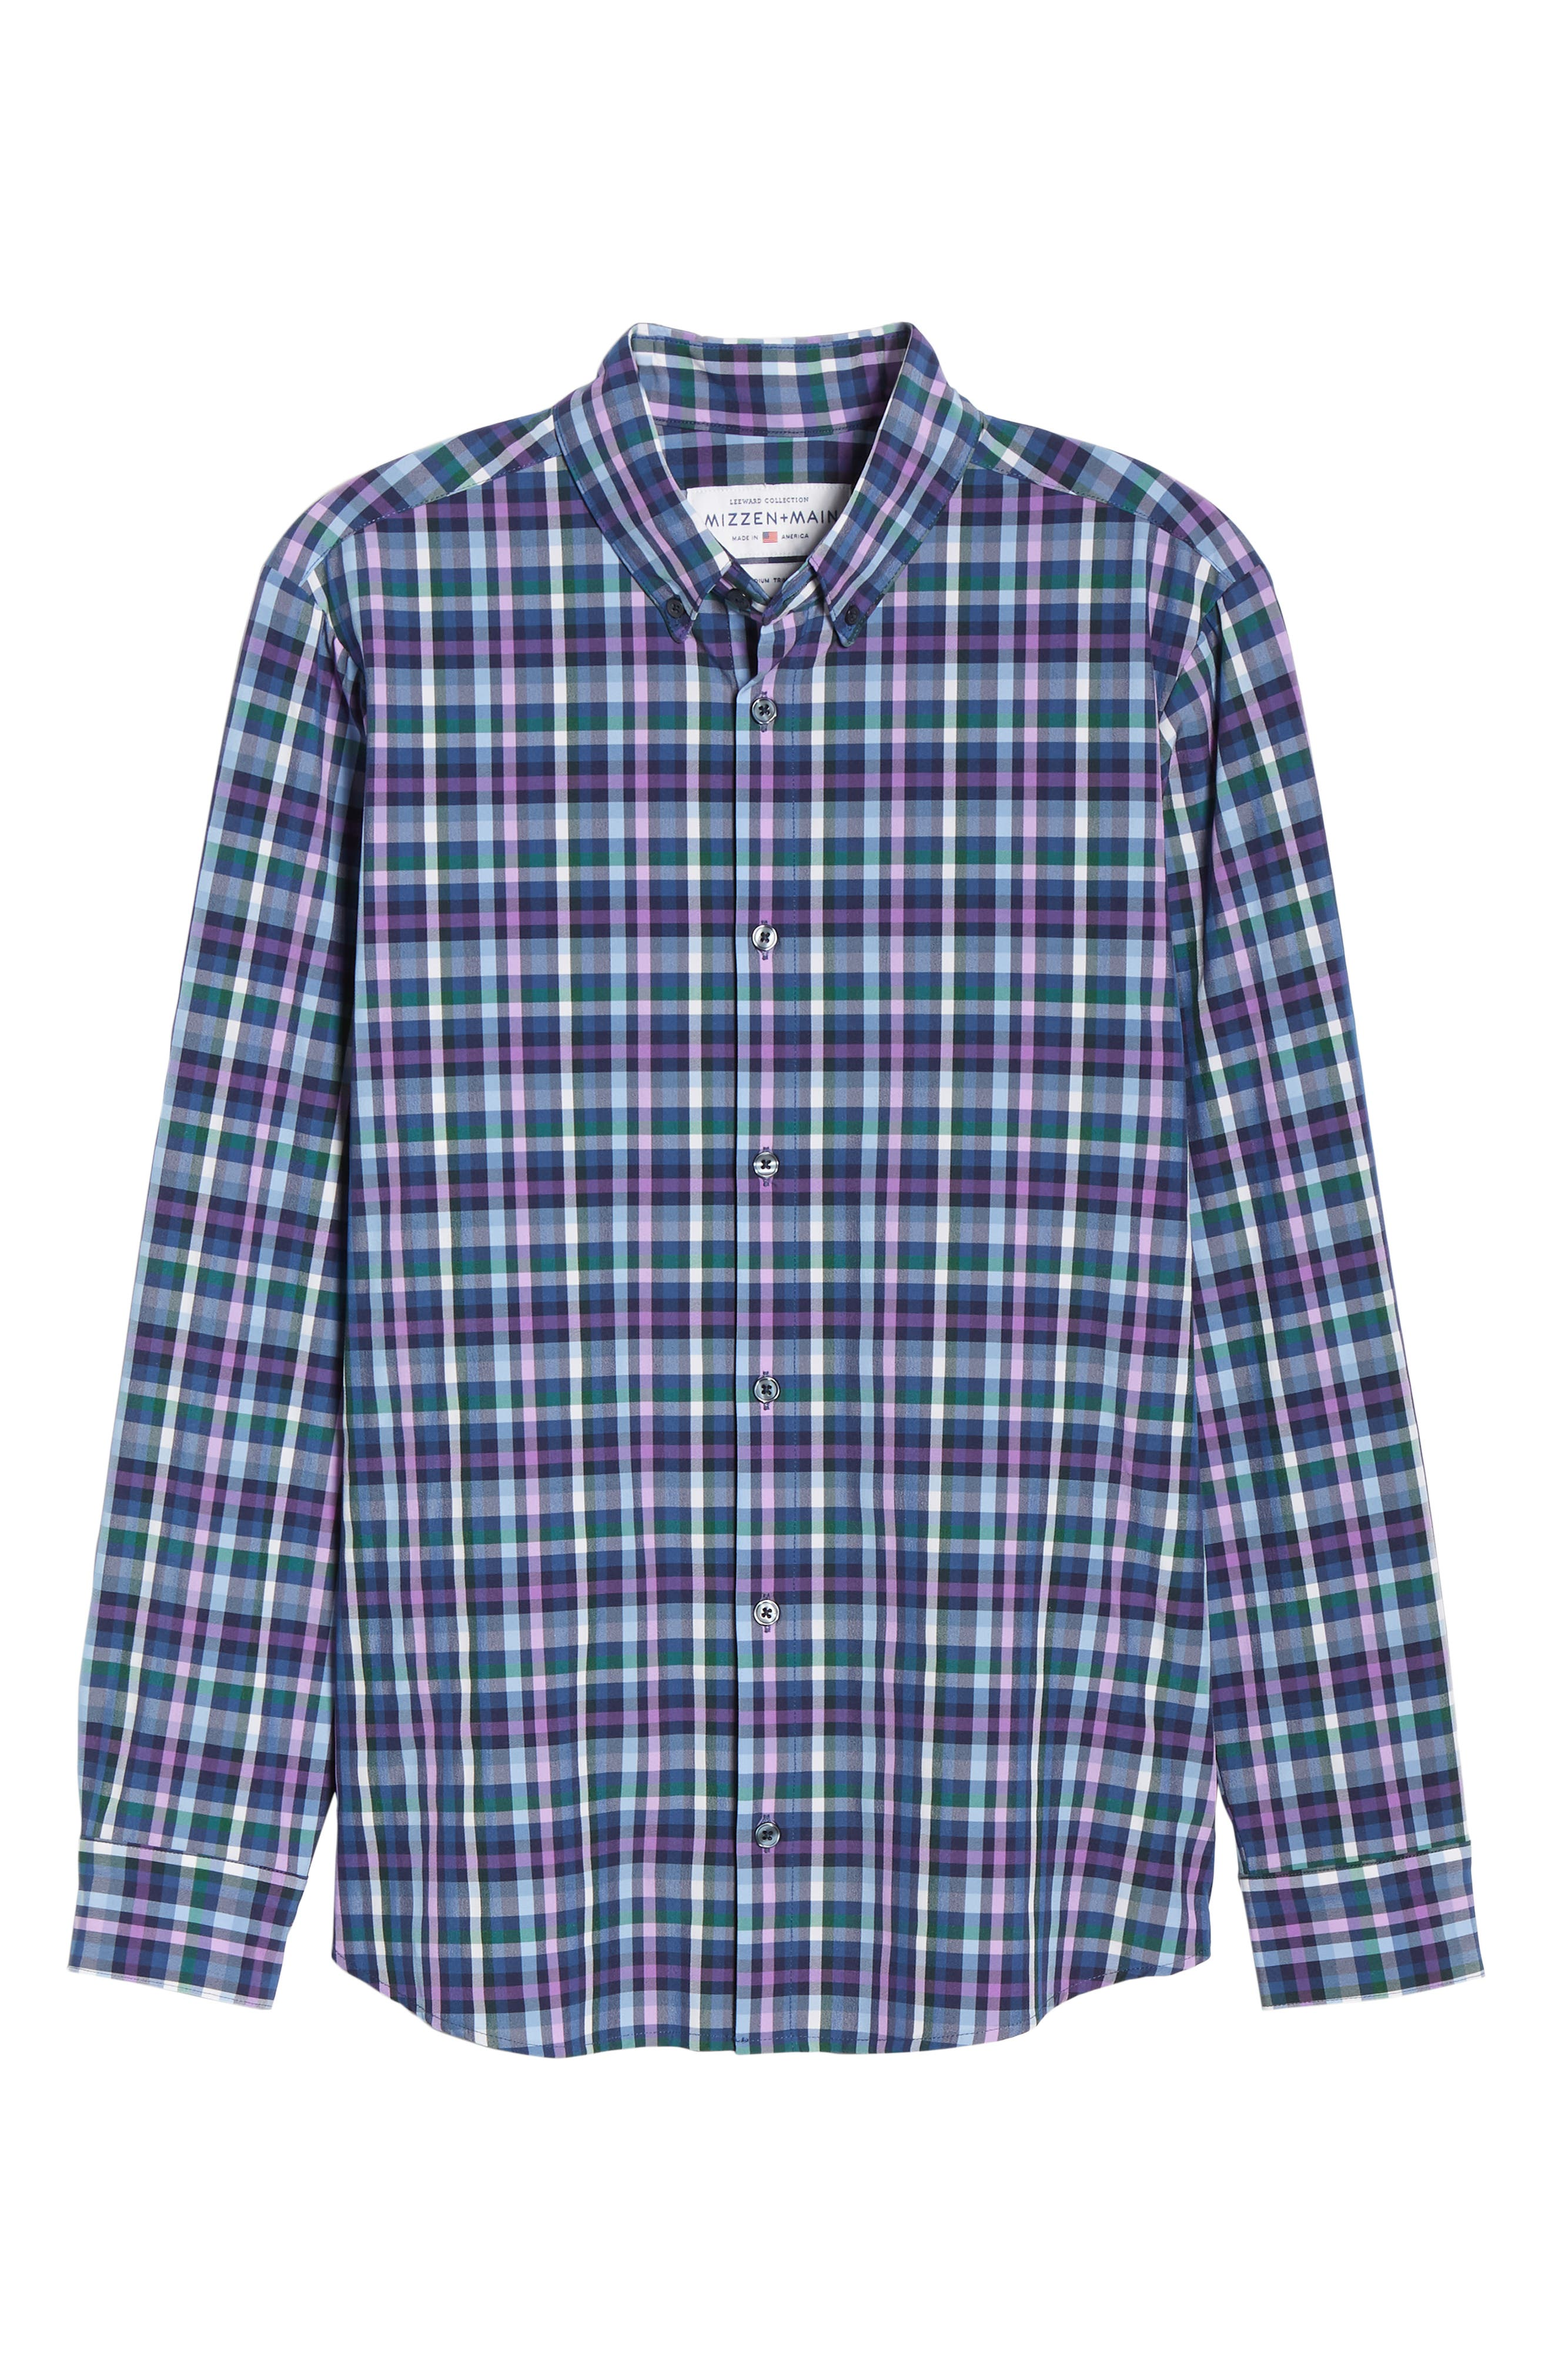 MIZZEN+MAIN, Snyder Plaid Performance Sport Shirt, Alternate thumbnail 5, color, NAVY